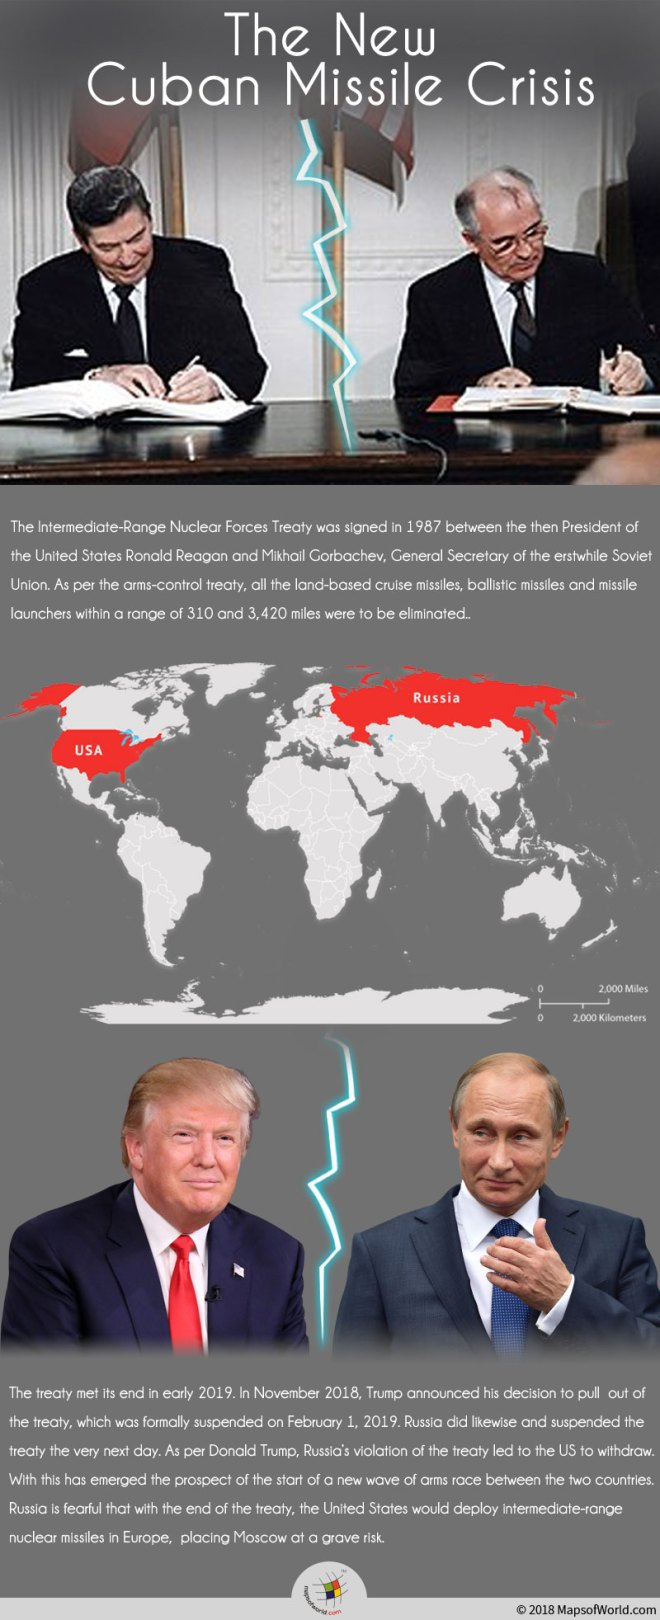 Infographic Giving Details on The New Cuban Missile Crisis